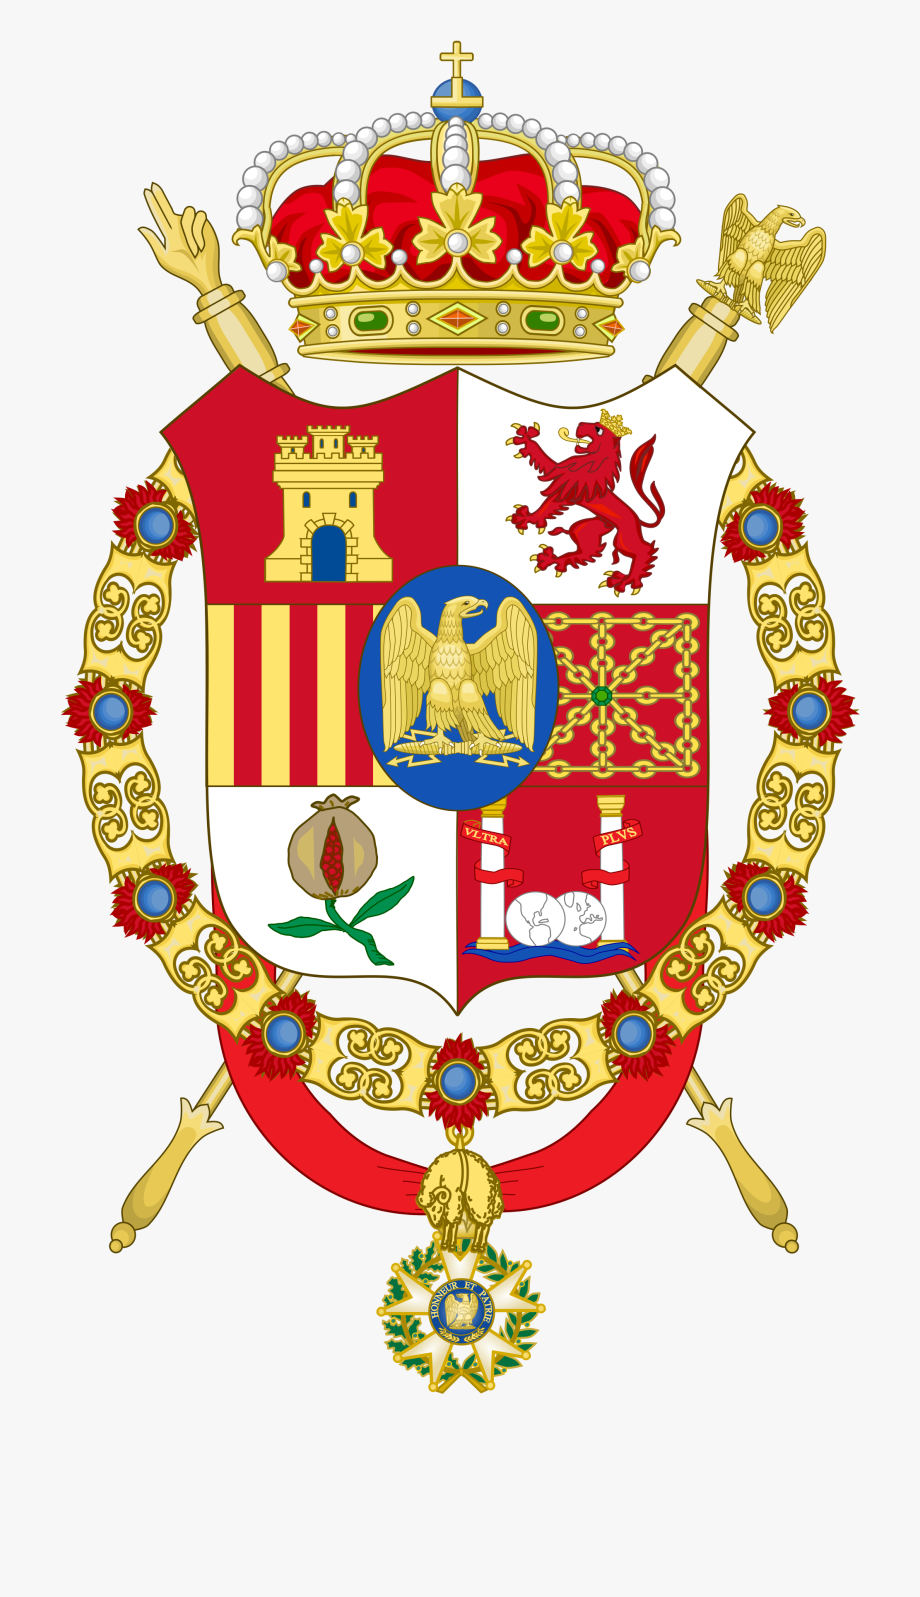 Coat of arms of spain clipart clip freeuse stock Spain Clipart Spanish Family - Kingdom Of Spain Coat Of Arms #971973 ... clip freeuse stock